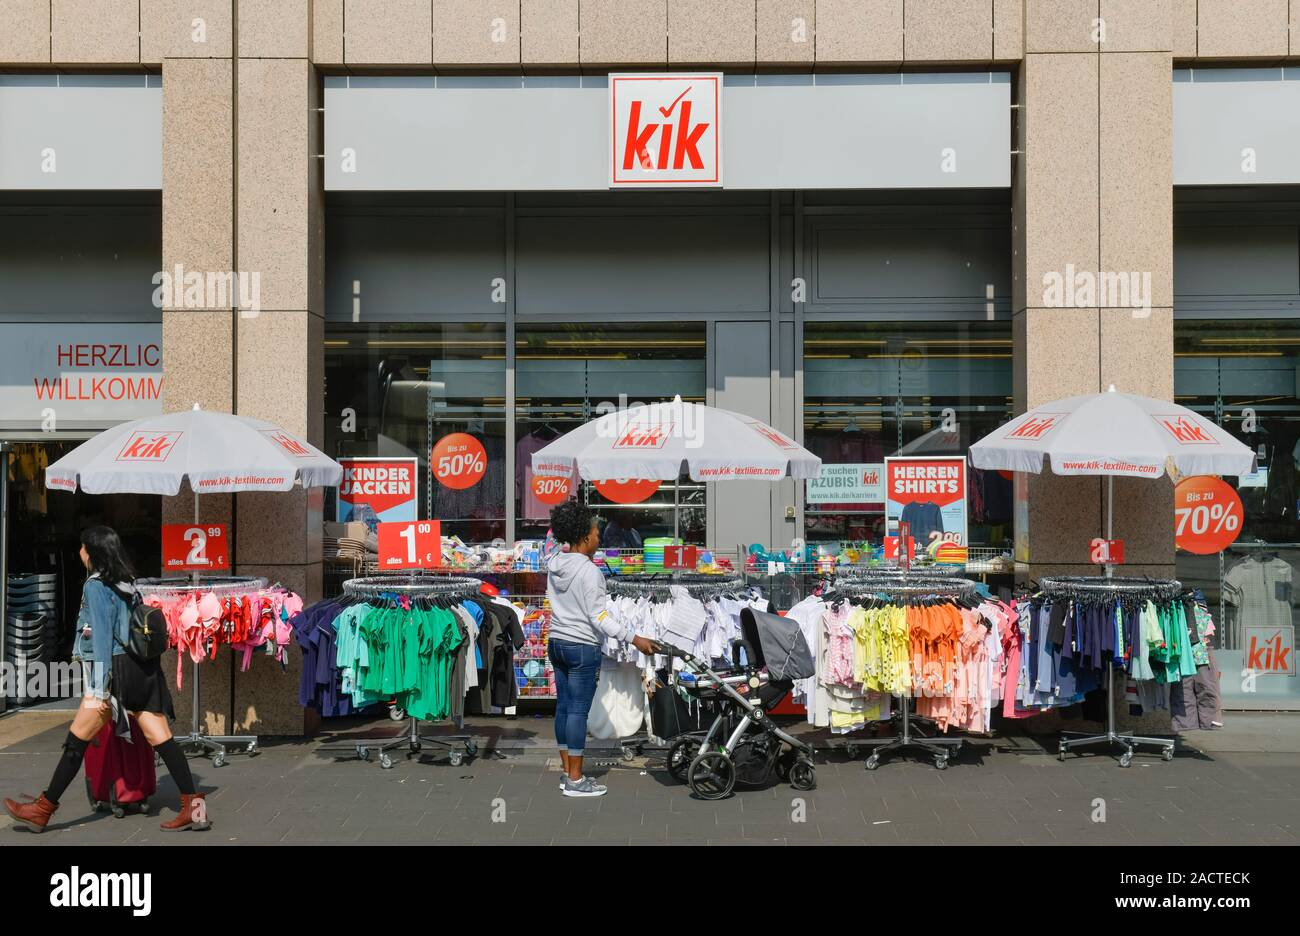 kik high resolution stock photography and images - alamy